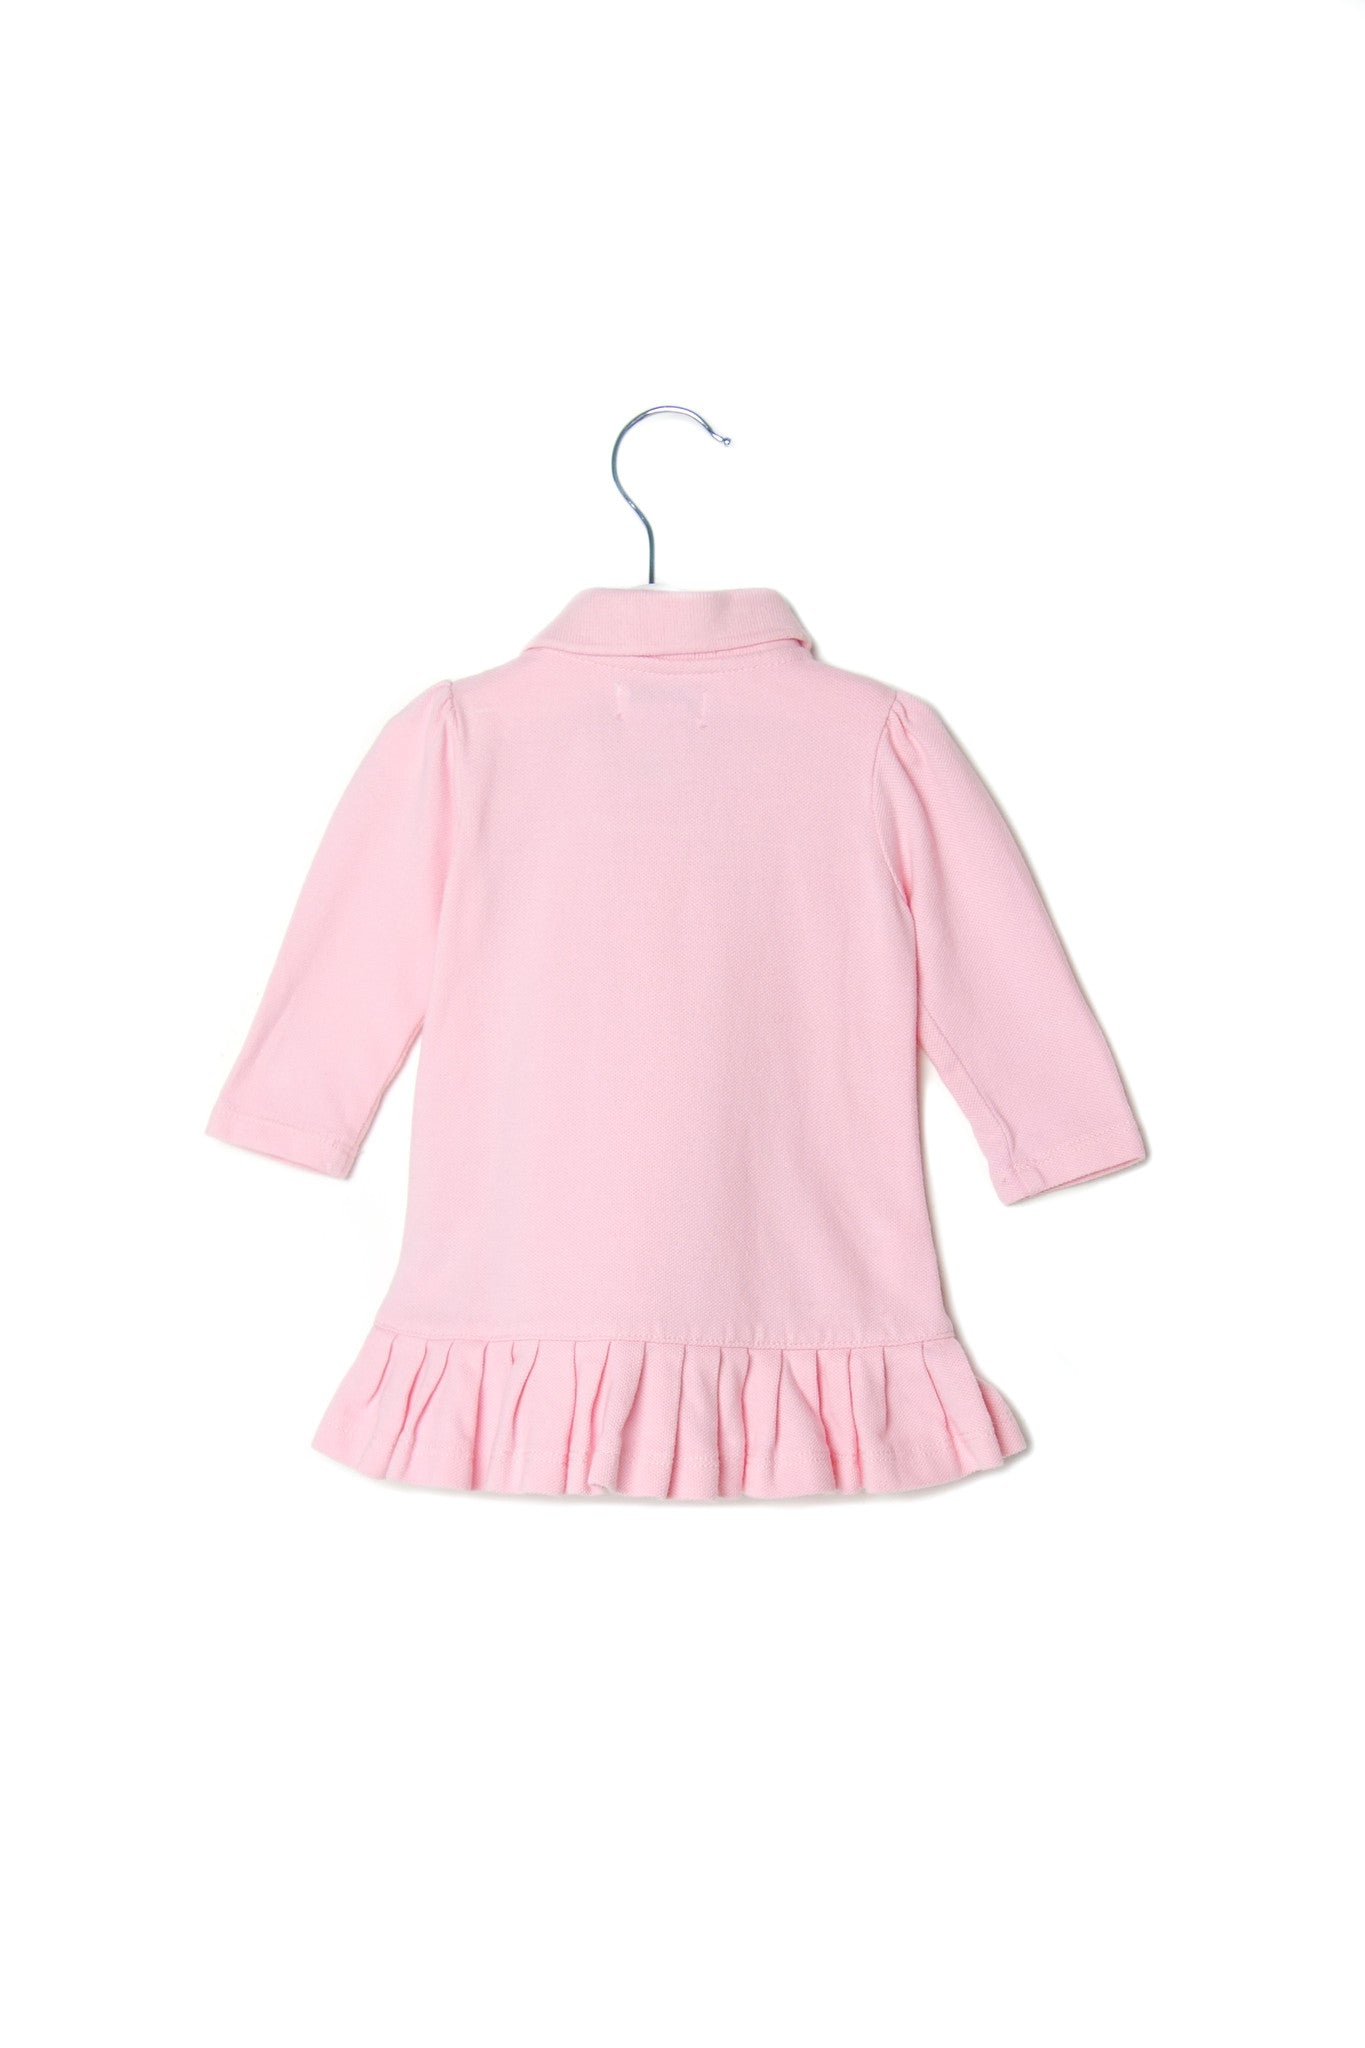 10001942 Ralph Lauren Baby~Dress 6M at Retykle